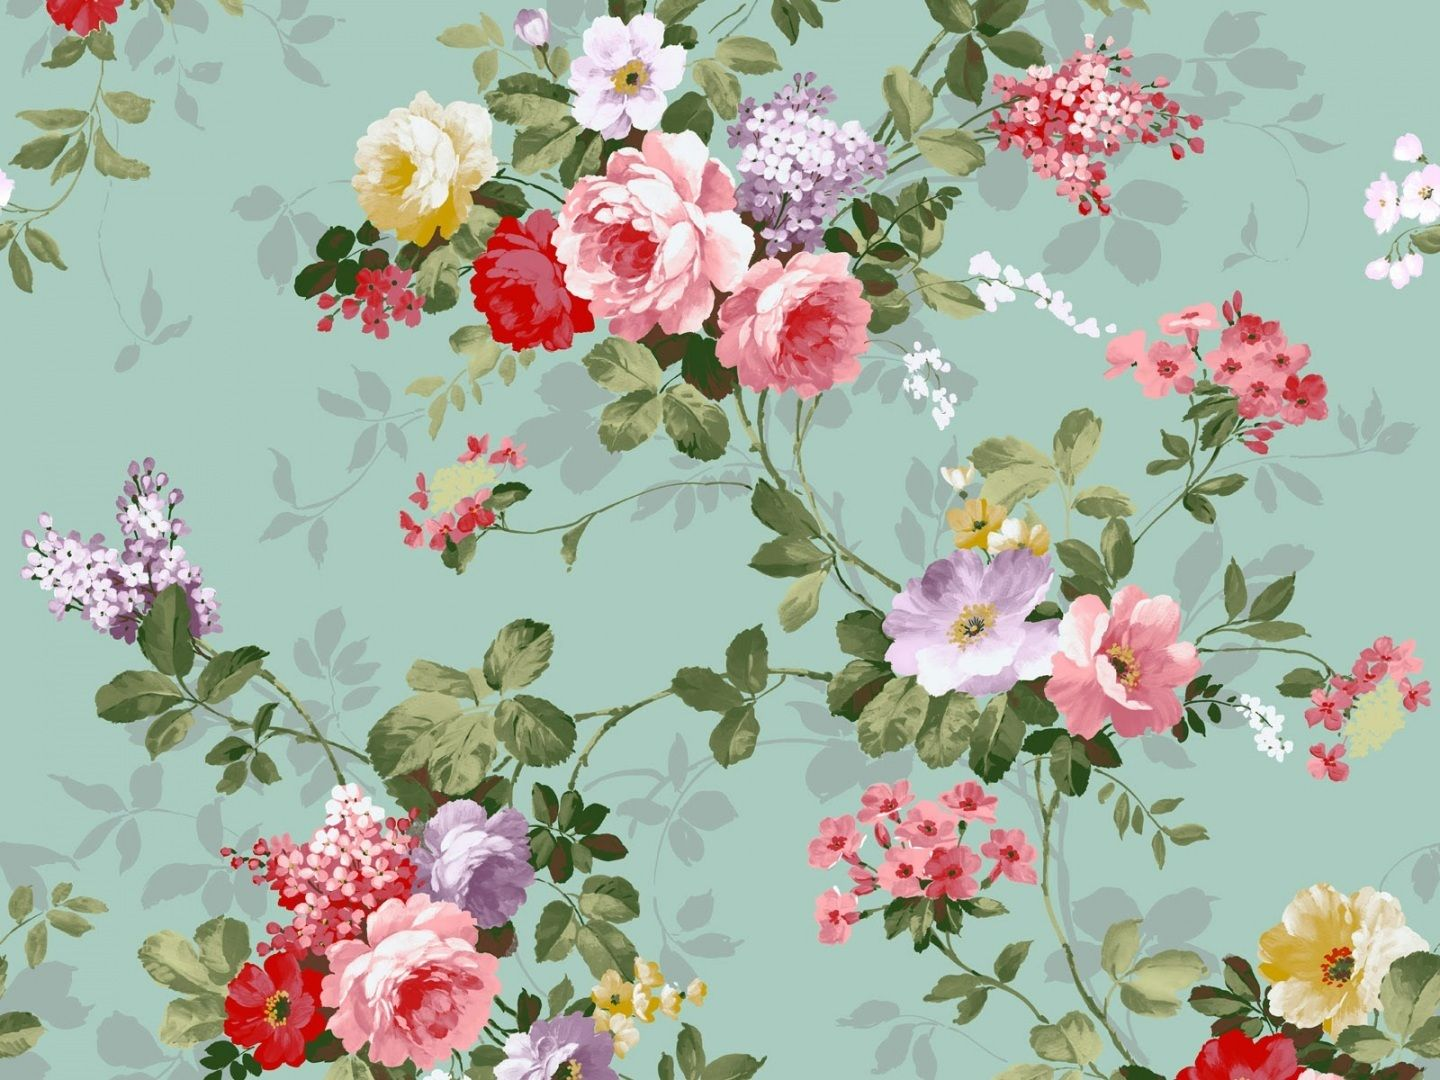 Milliwall Vintage Floral Wallpaper Cool Hd Uk Tumblr